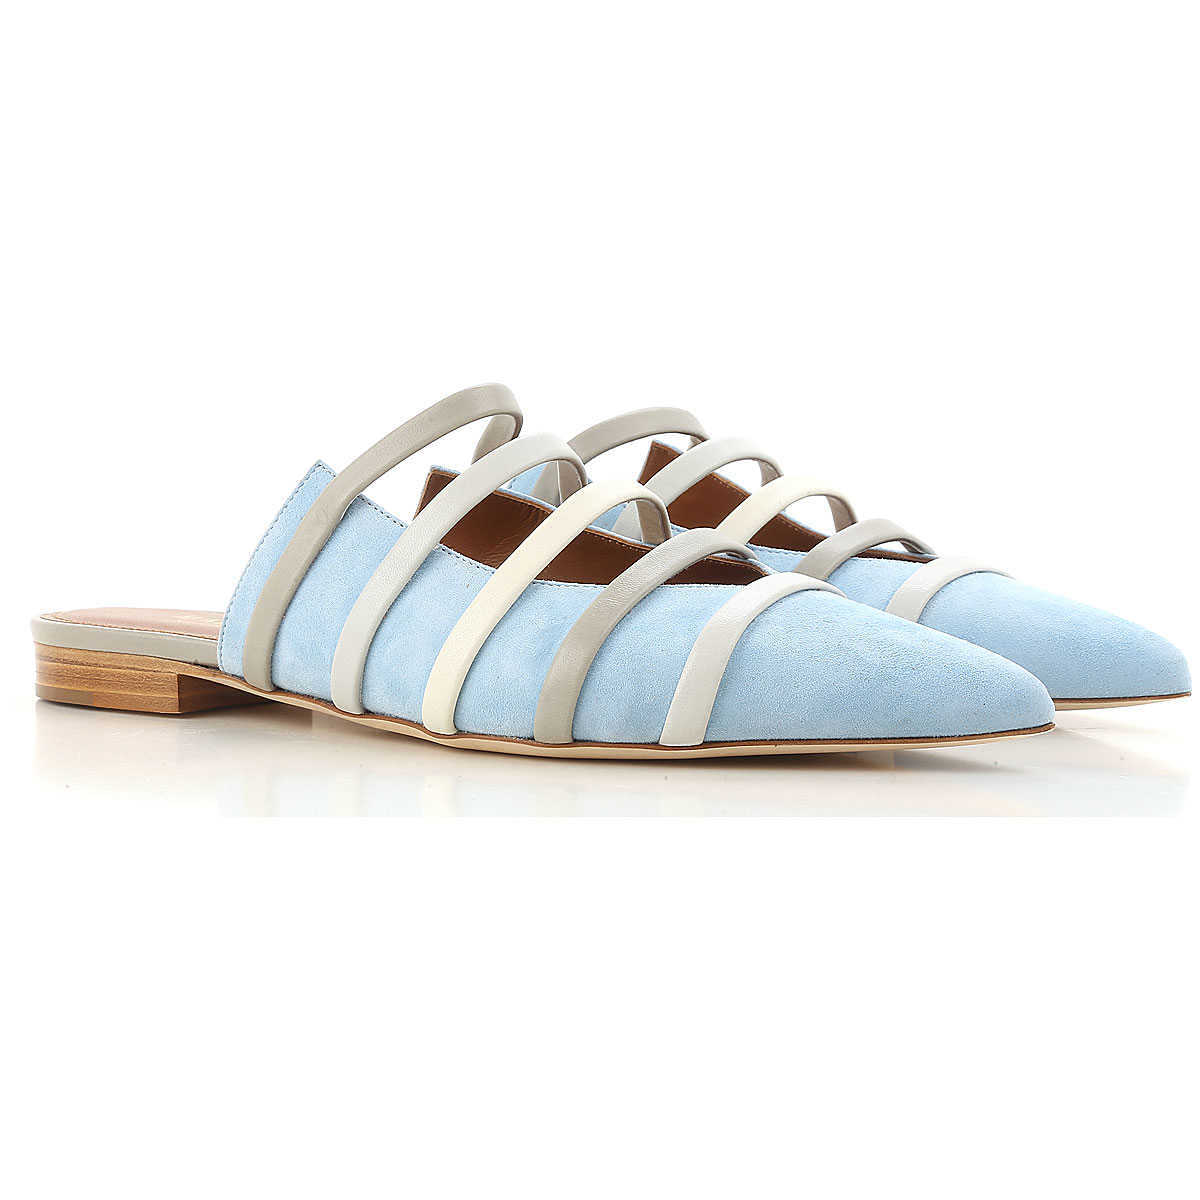 Malone Souliers Ballet Flats Ballerina Shoes for Women On Sale in Outlet Powder Blue DK - GOOFASH - Womens BALLERINAS